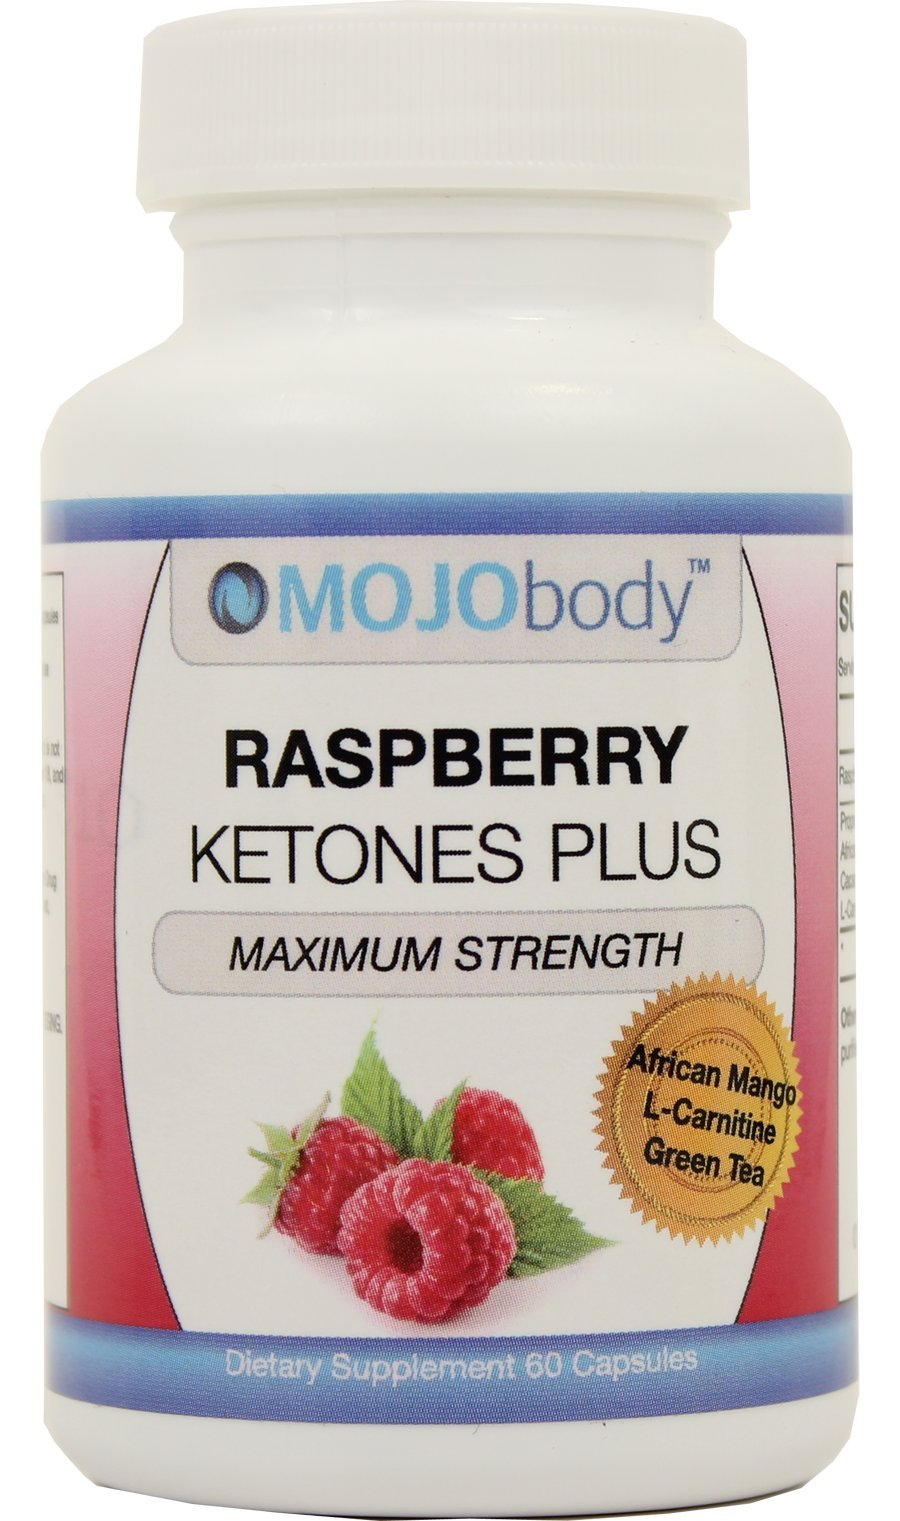 MOJObody Raspberry Ketones Plus African Mango (Appetite Suppressant), Green Tea (antioxidant), Theobromine (Energy) and L-Carnitine (Supports Lean Muscle Mass)